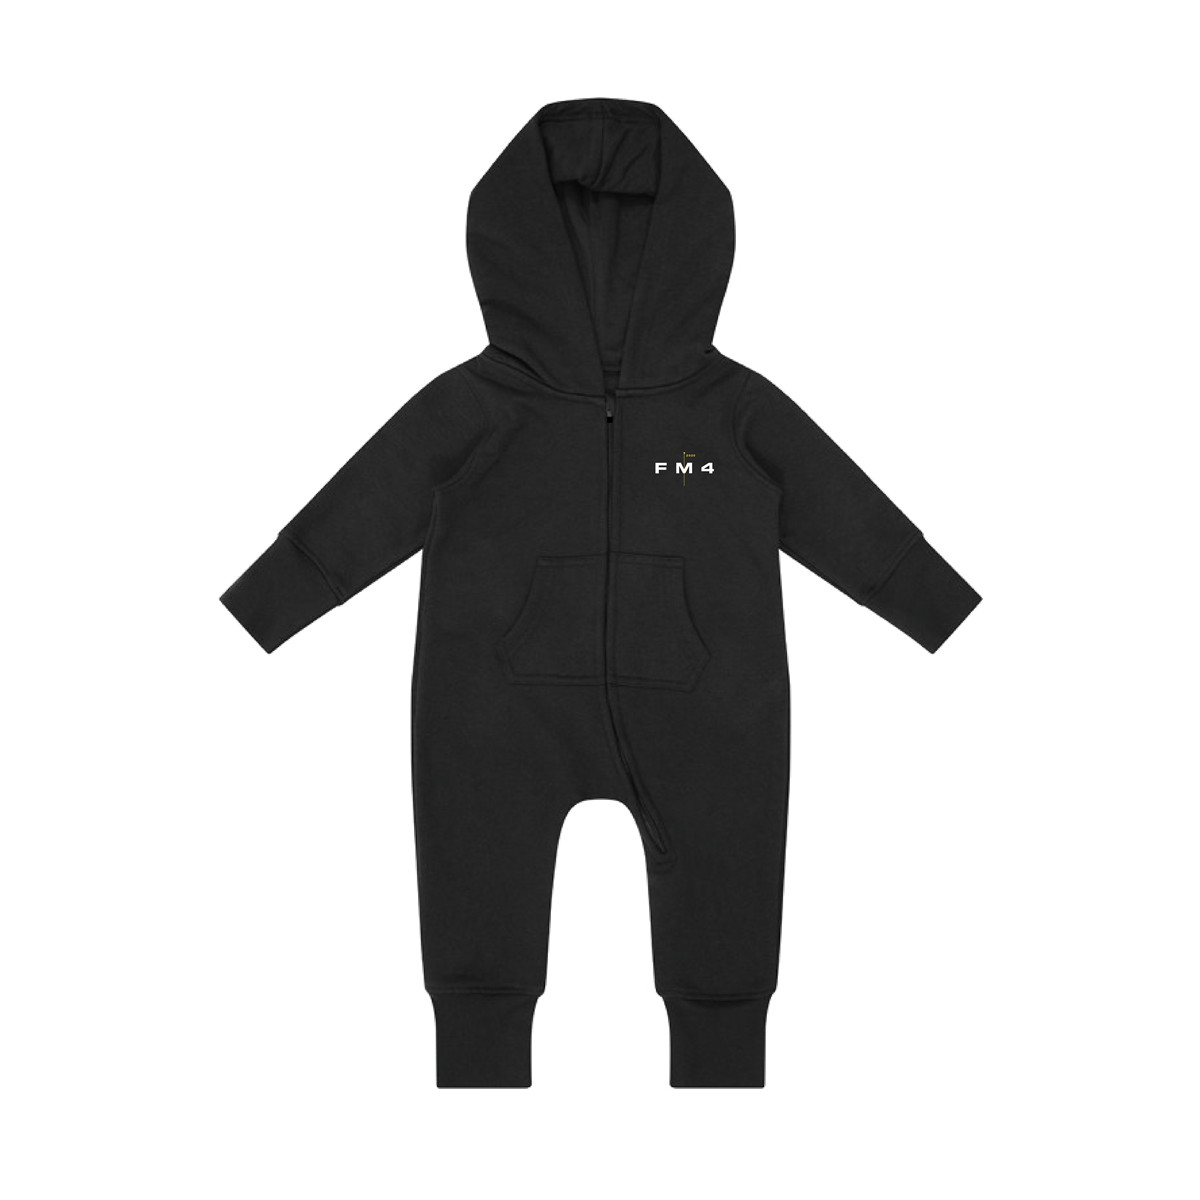 FM4 x peng! - 25 years anniversary collection_Babyonesie_front_EUR 39